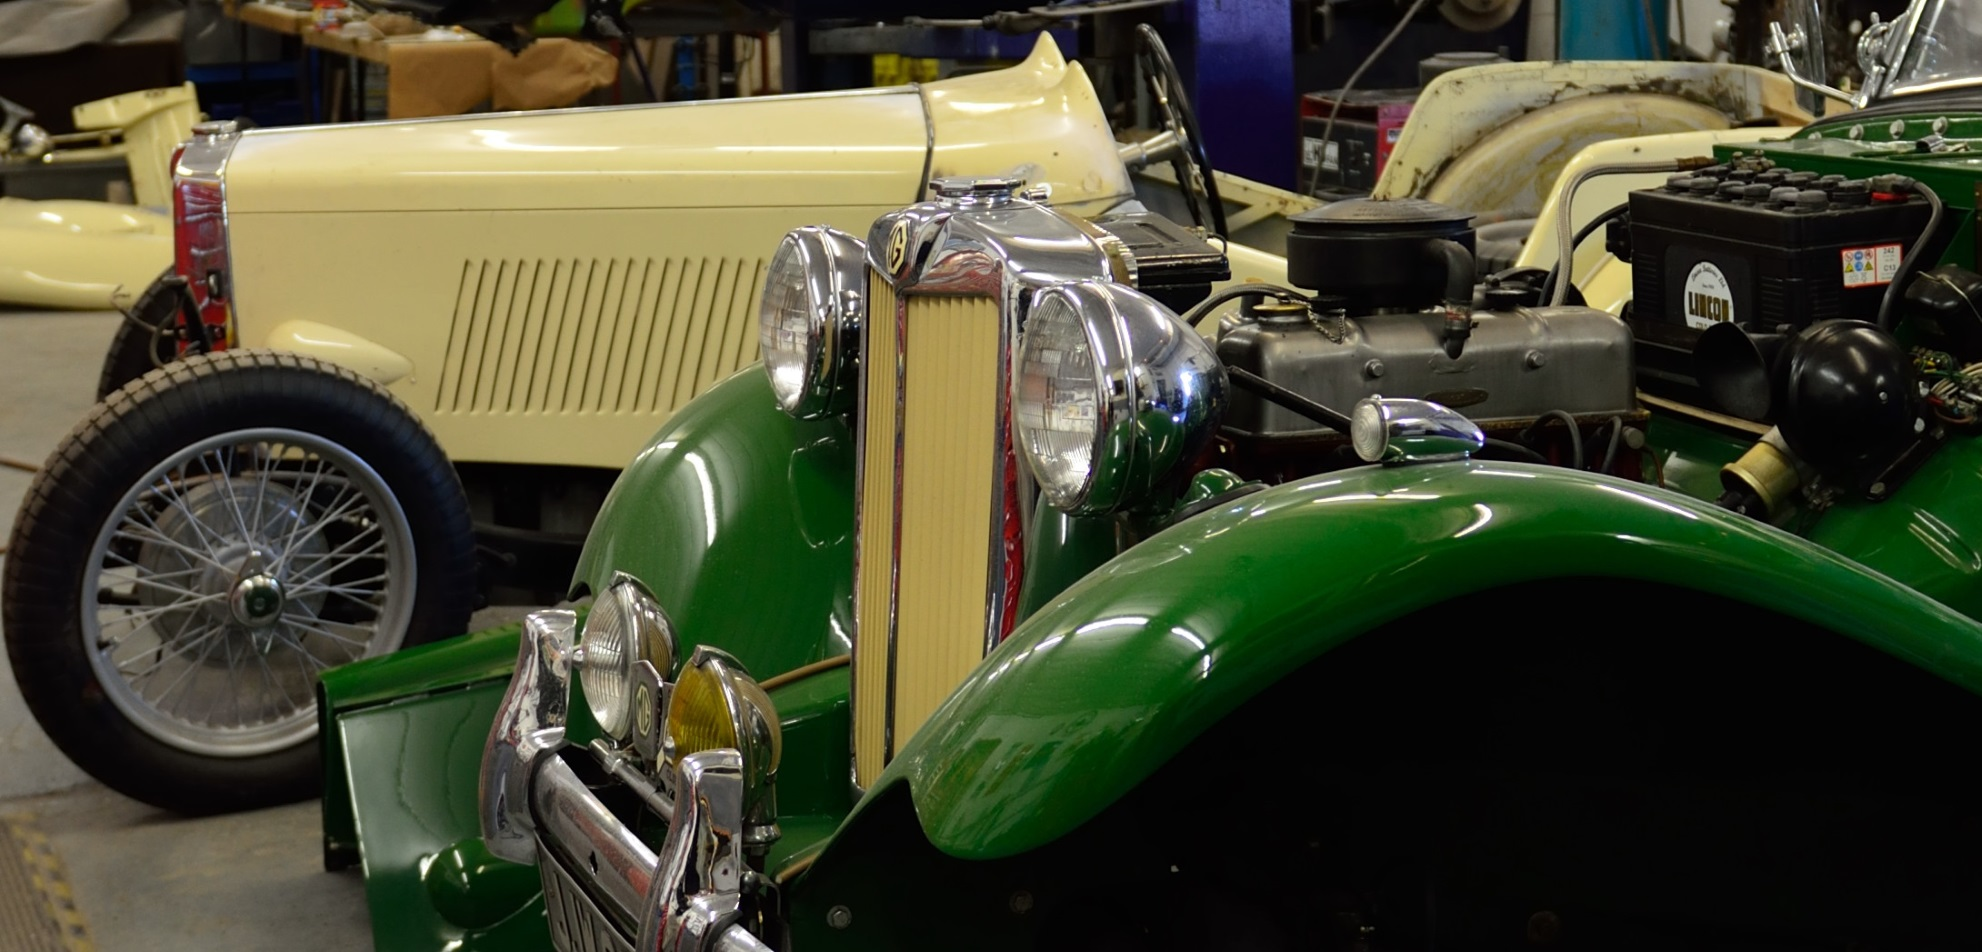 MG TD in for Servicing, MG TC in for restortation